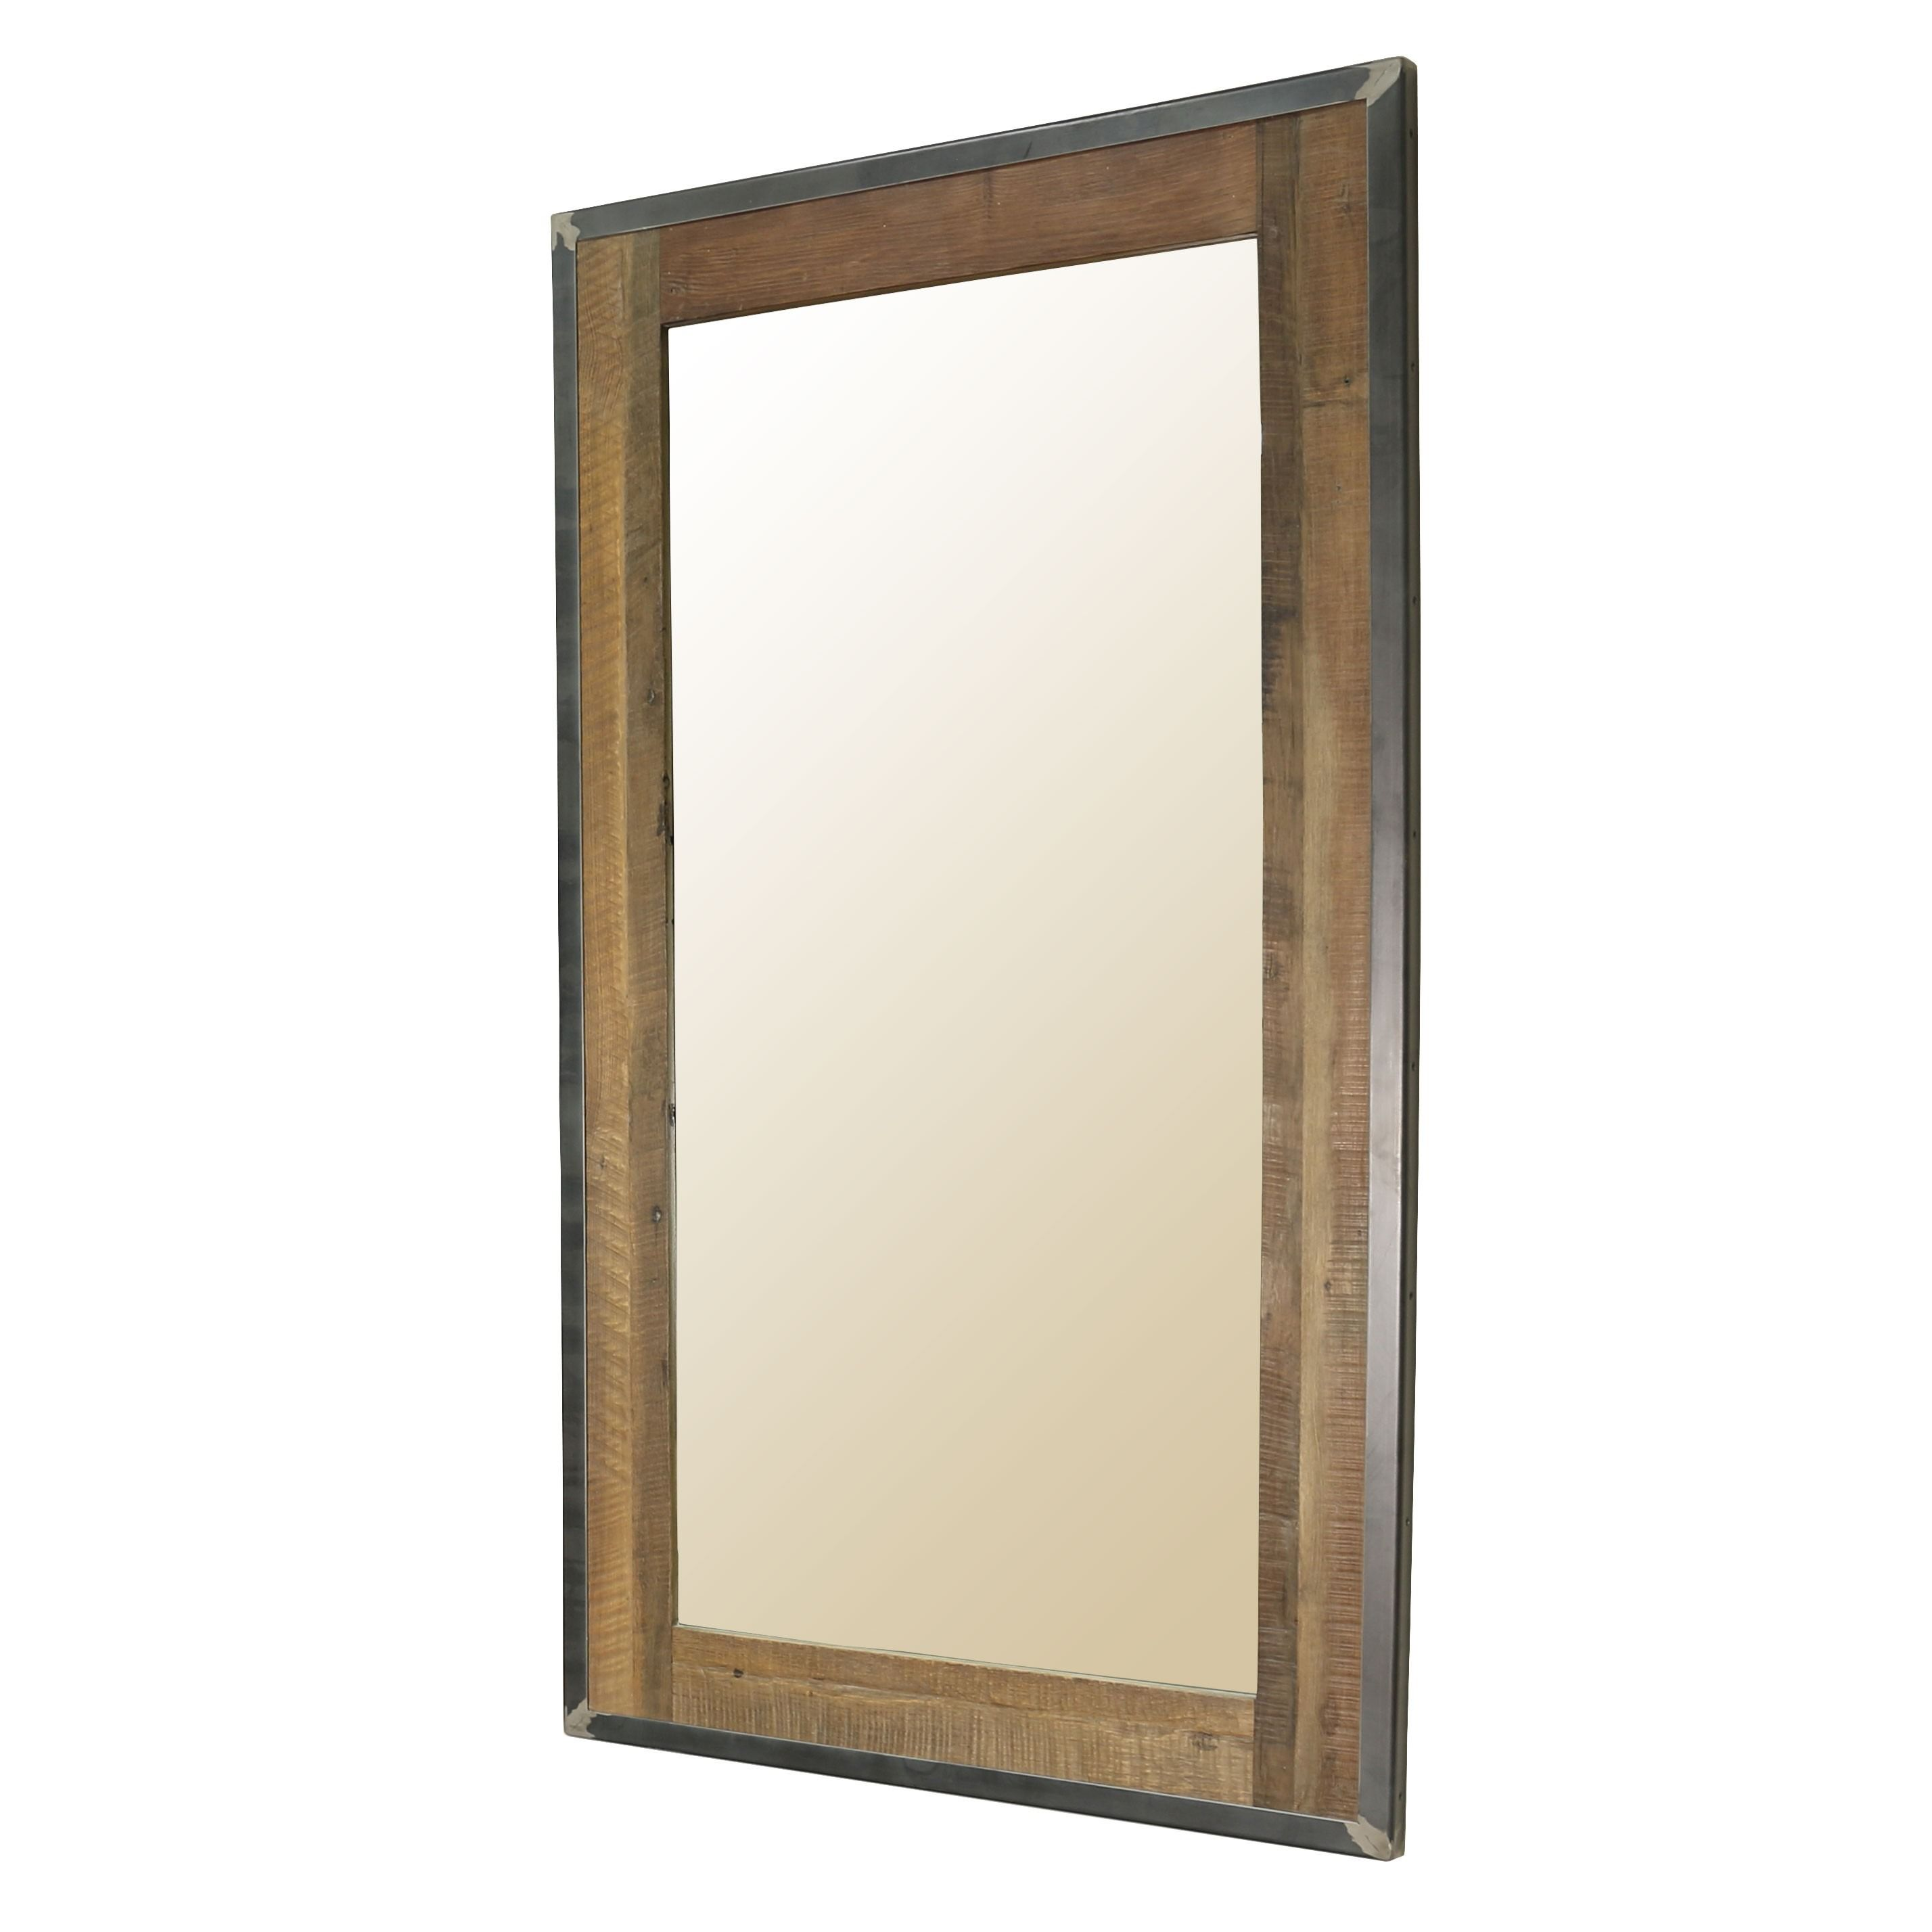 The Comanche Full Length Mirror Features A Welded Iron Frame French